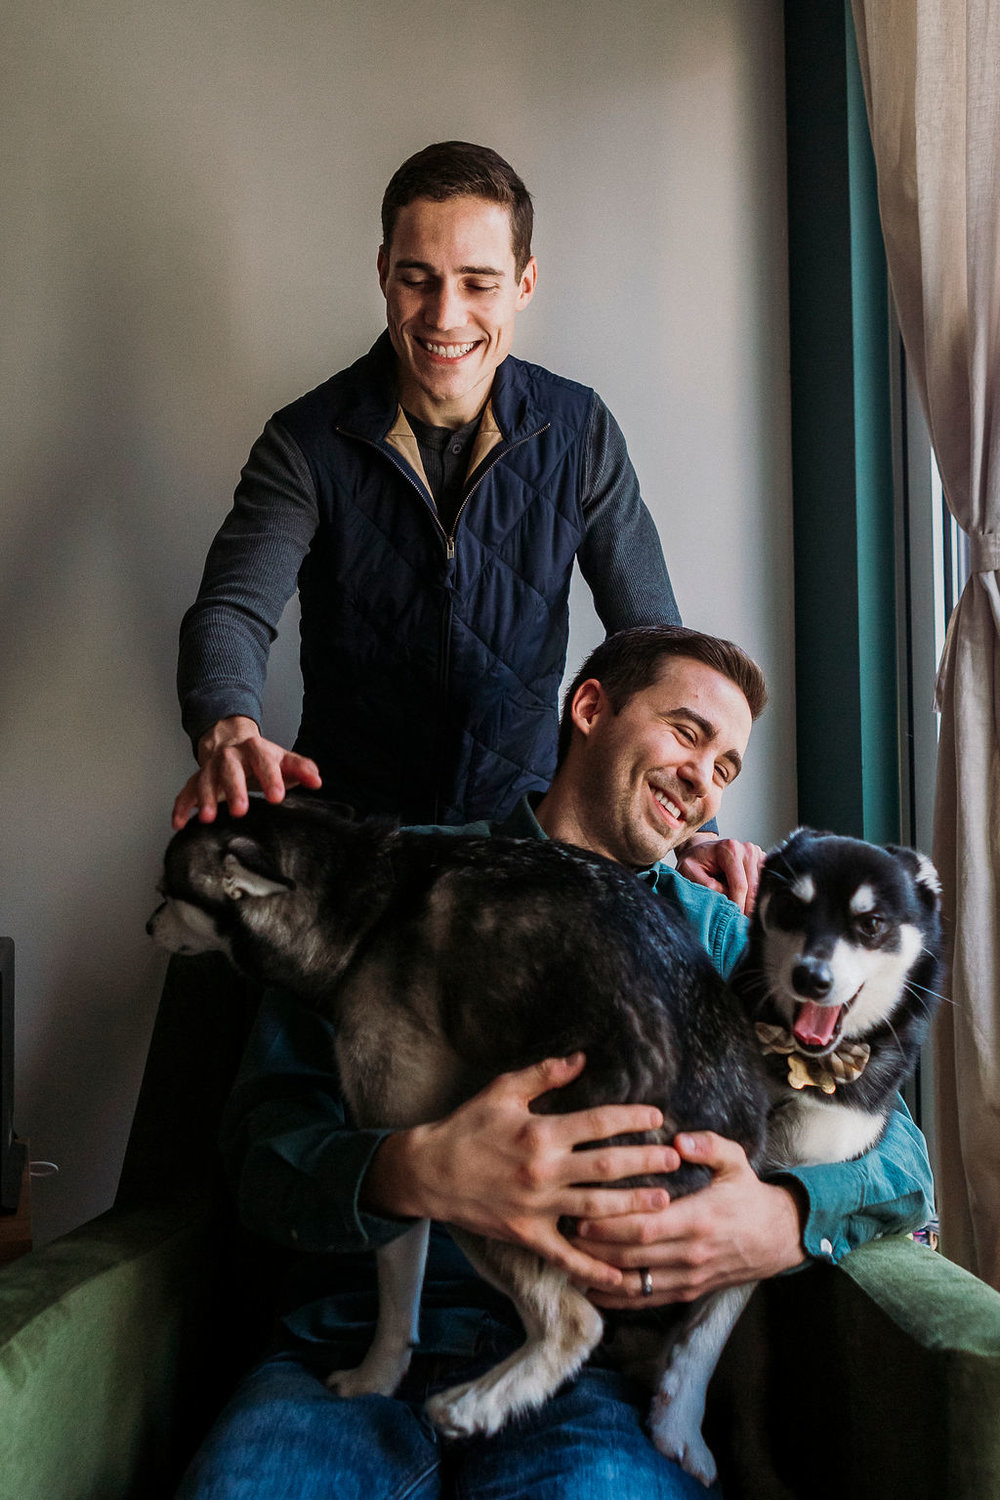 Mikey-Justin-engagement-photos-wilmington-delaware-photography9.jpg